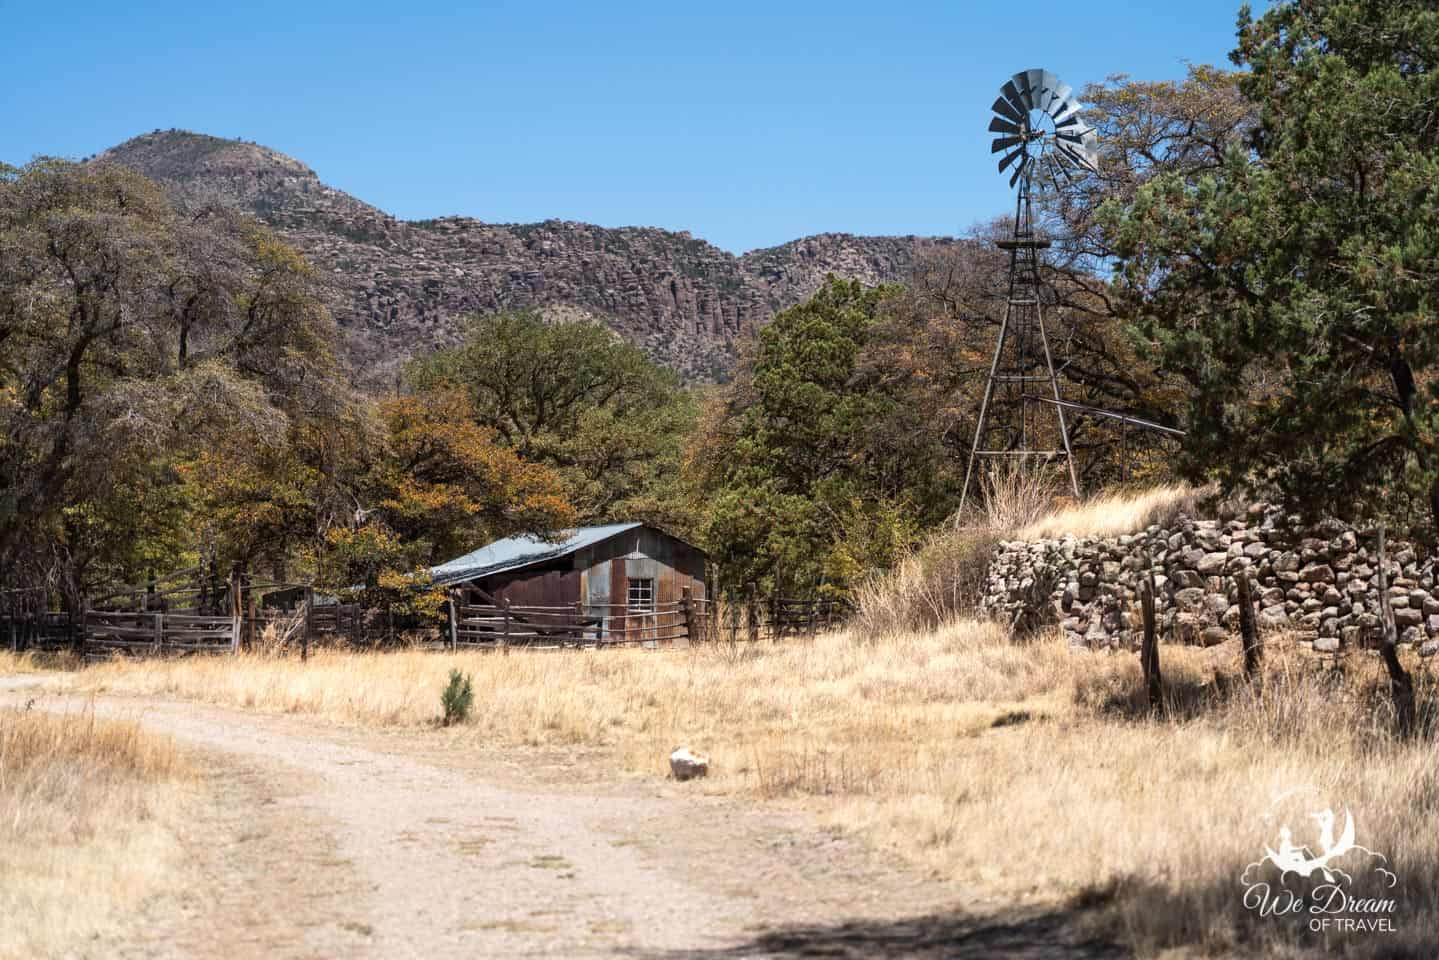 One of the nicer views along the Bonita Creek Trail near the entrance to Chiricahua National Monument.